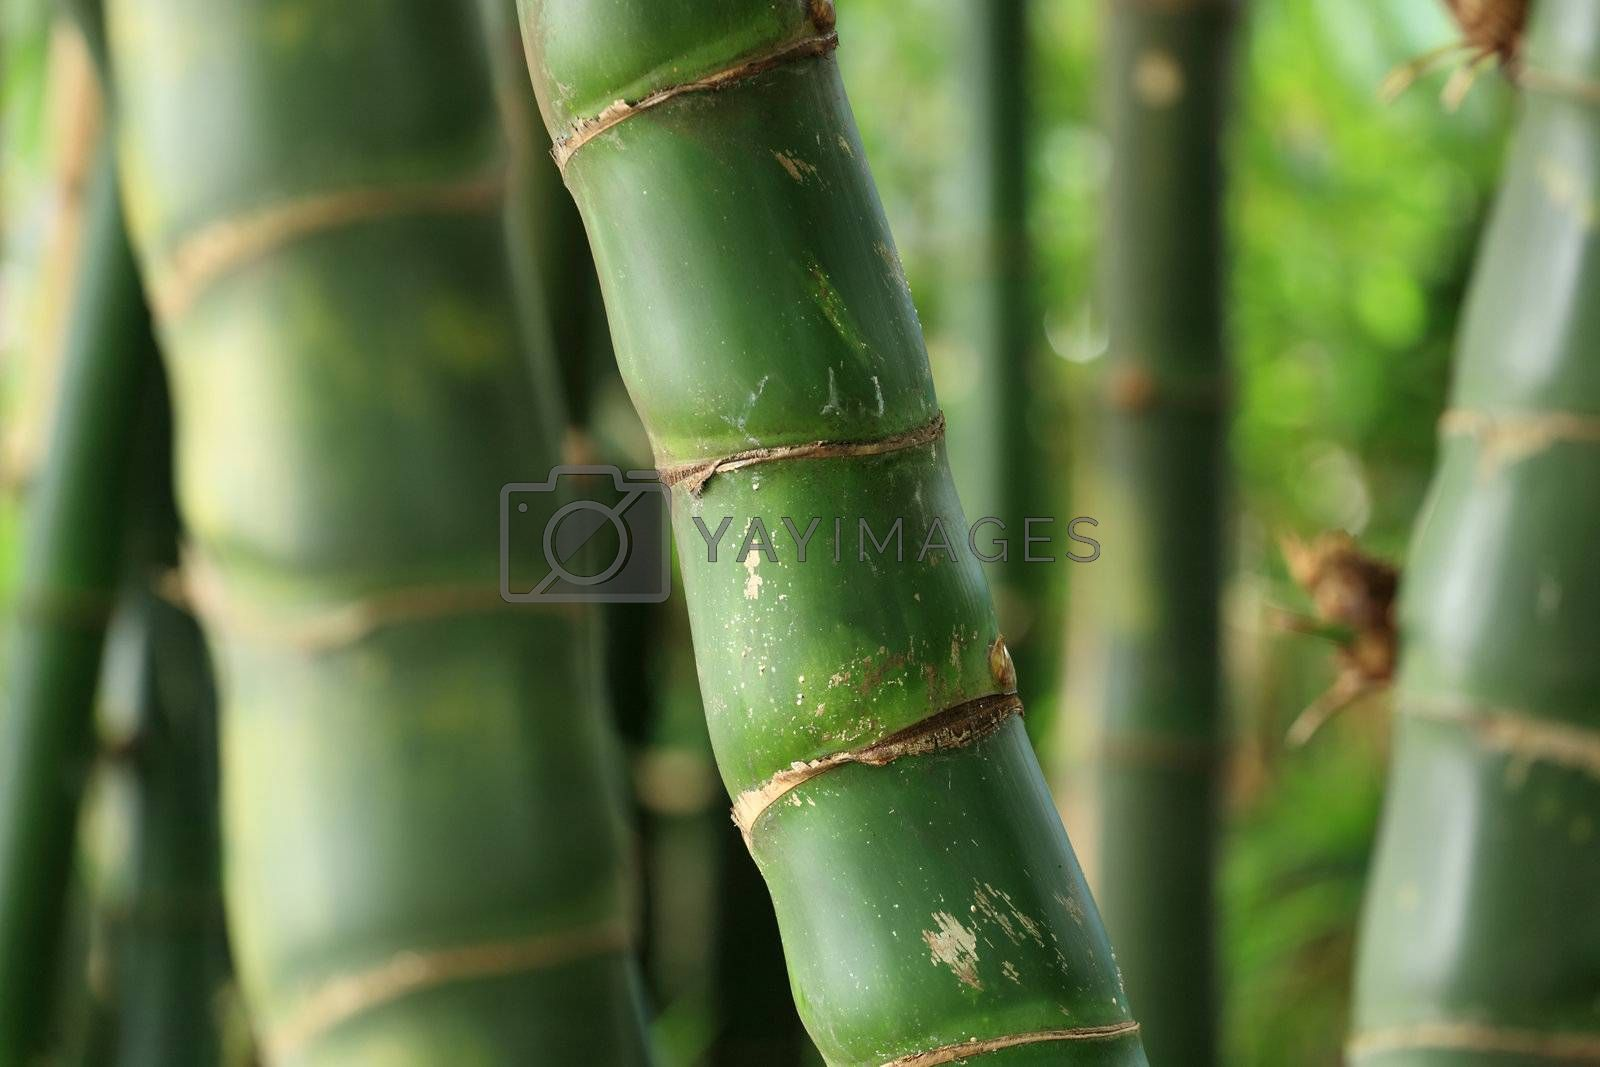 Bamboo forest background by leungchopan